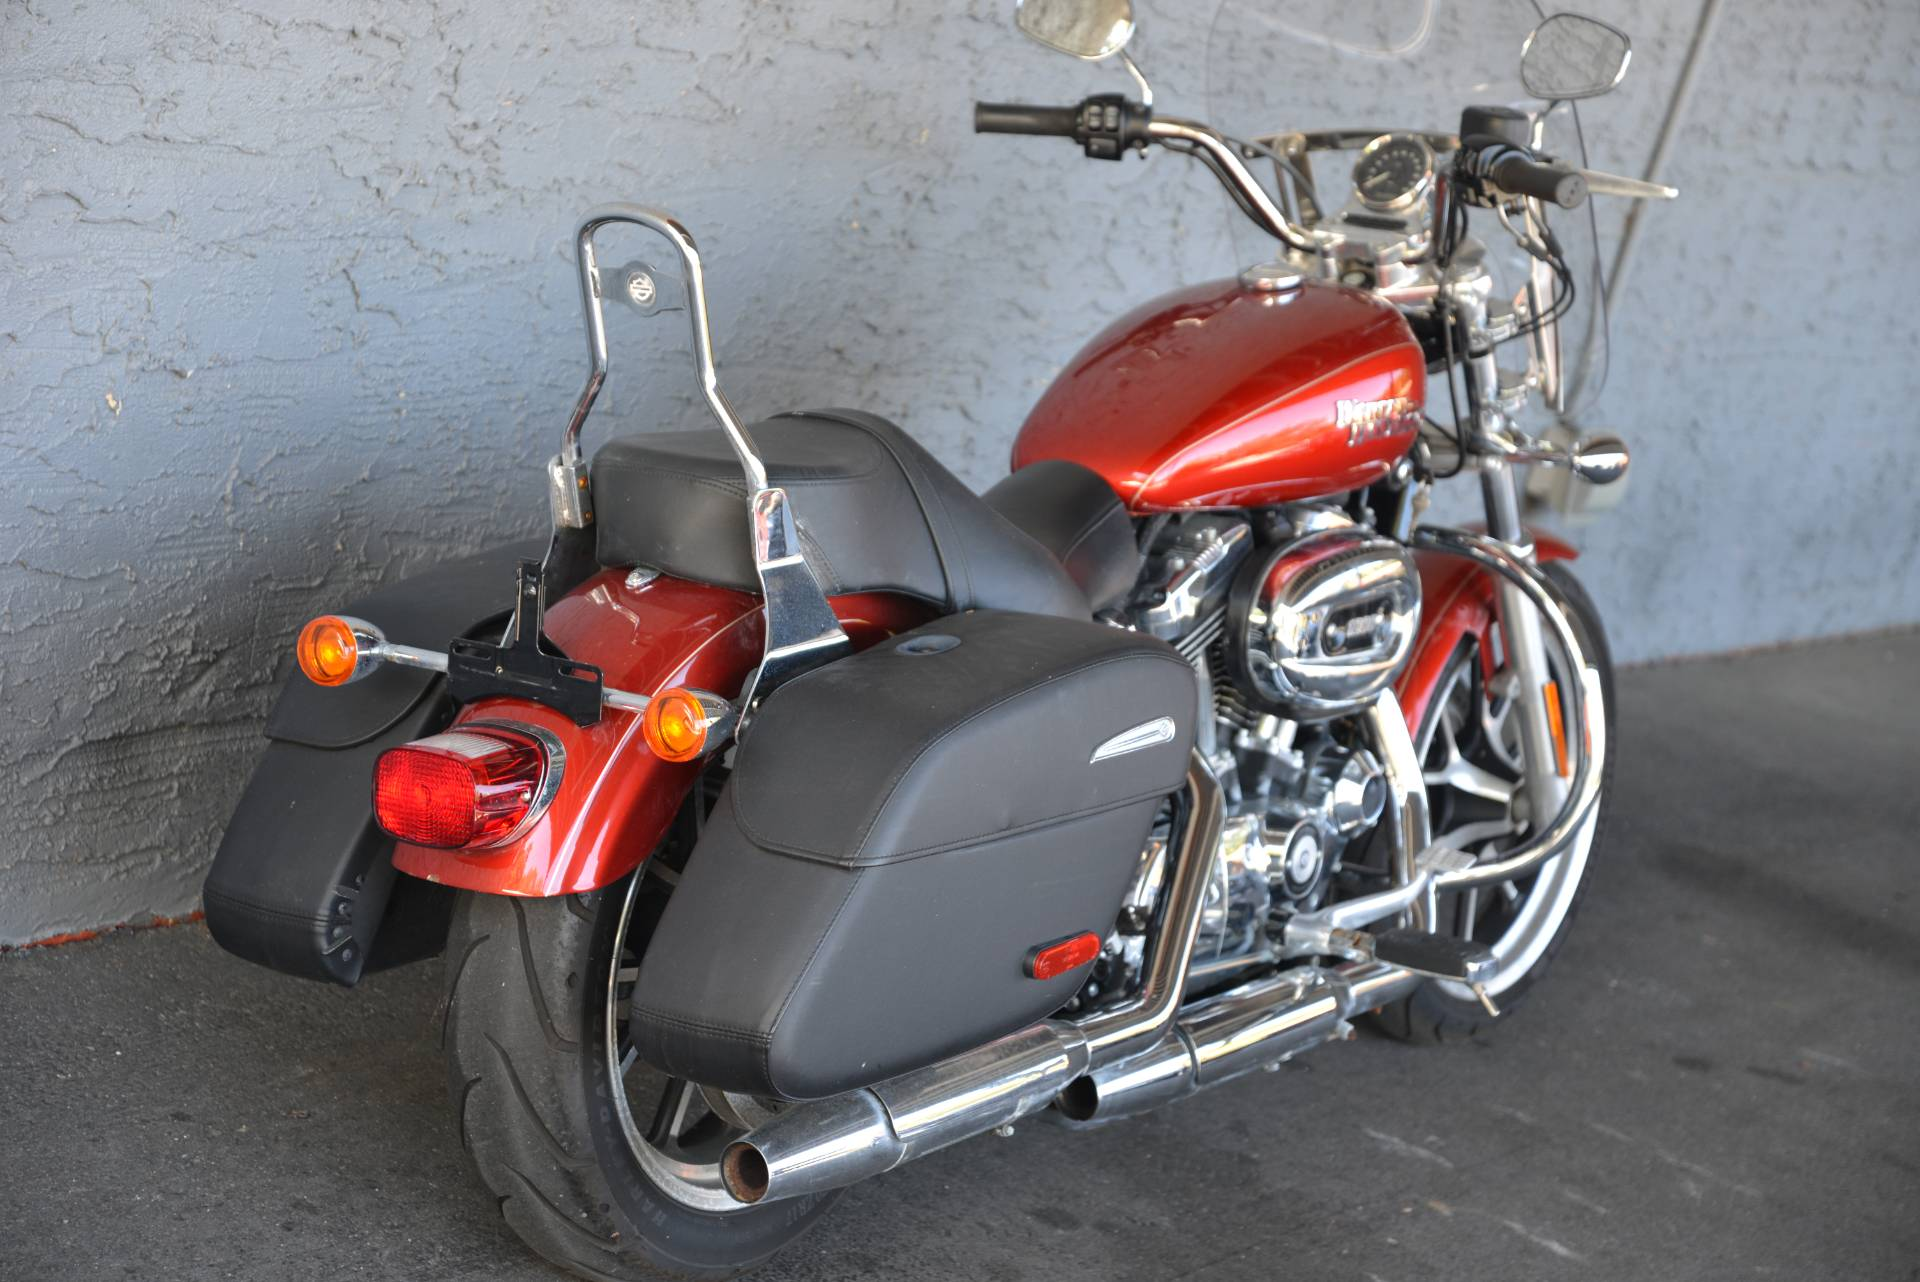 2014 Harley-Davidson 1200 SUPERLOW in Lakewood, New Jersey - Photo 3